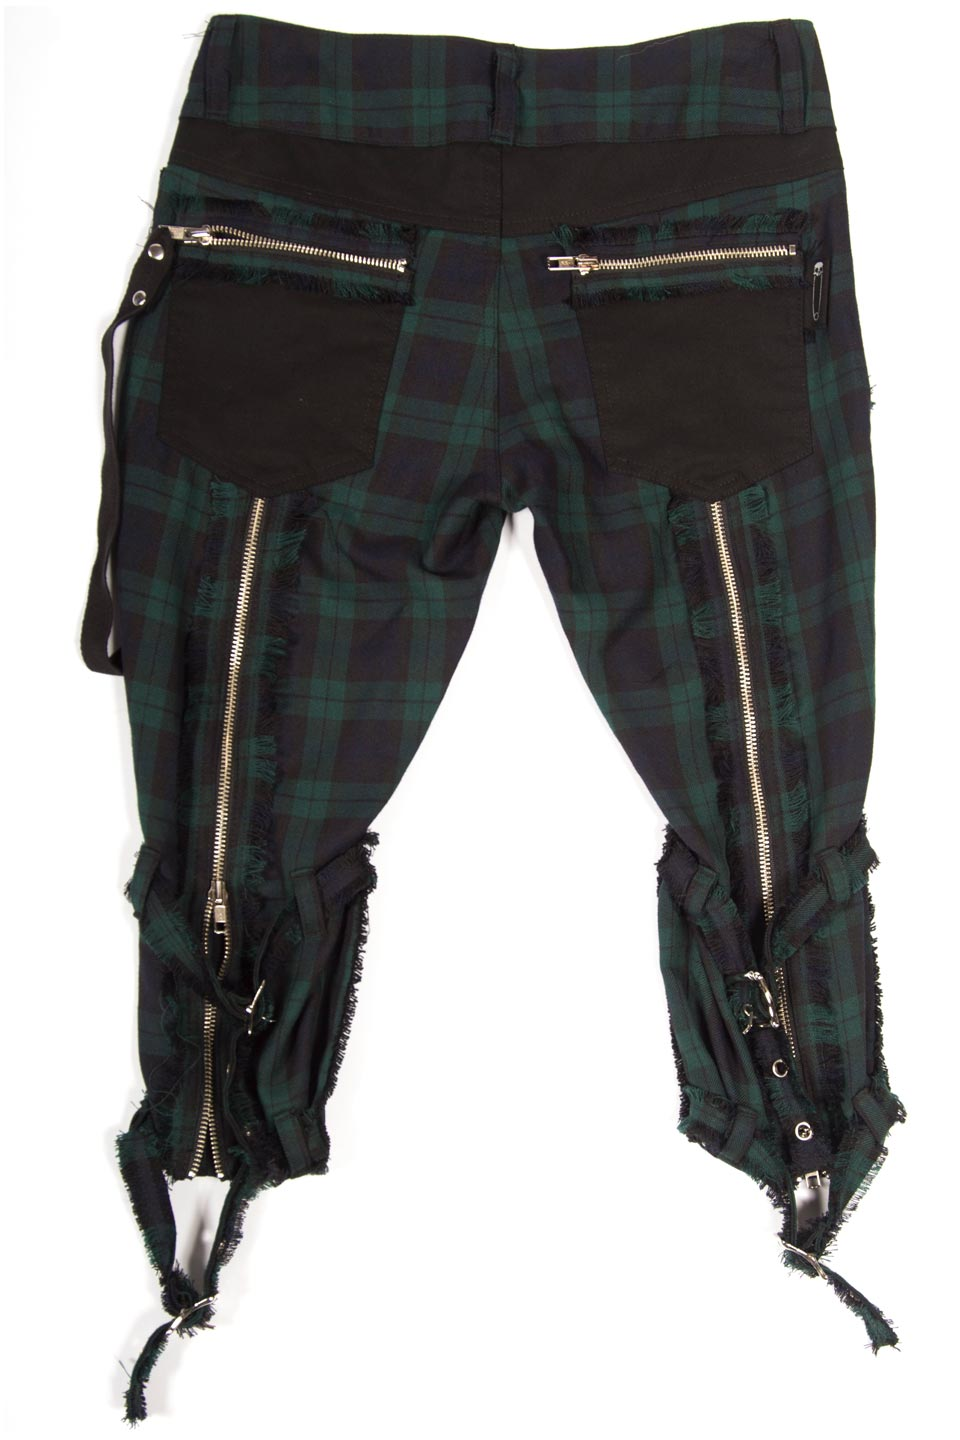 Vintage Punk & Disorderly Green Capri Pants-Bottoms-Lip Service